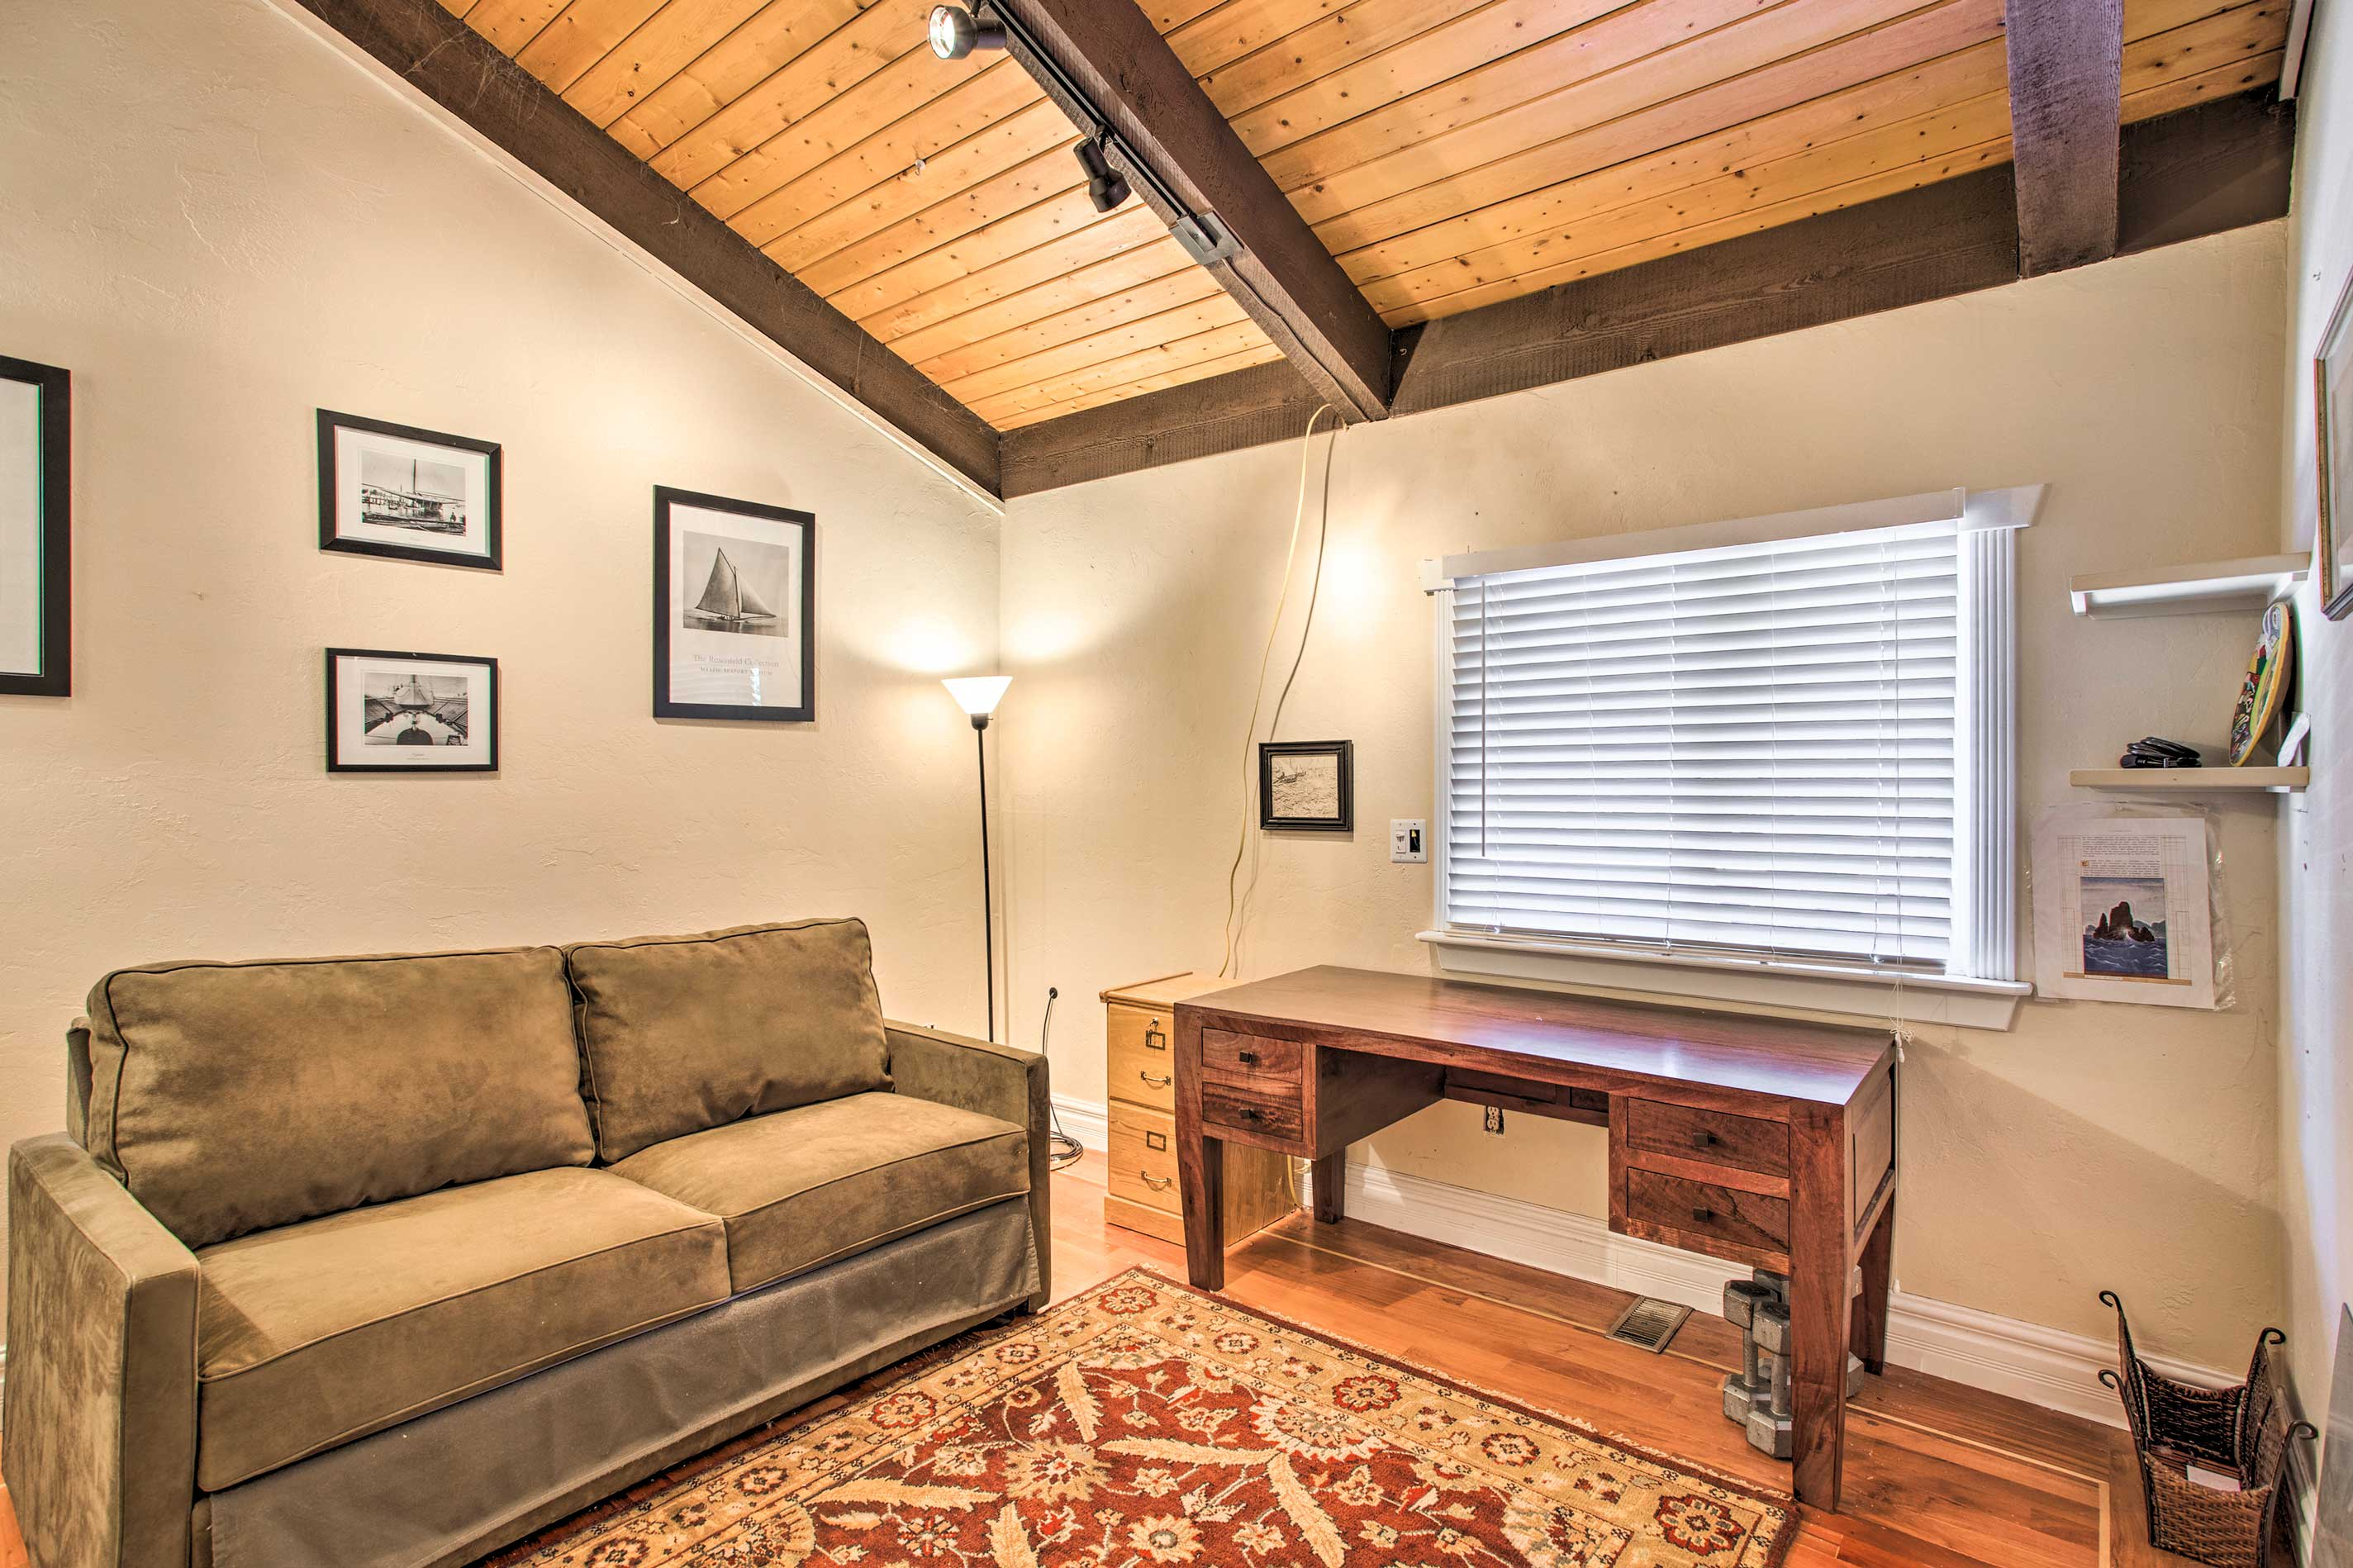 The second bedroom offers a sleeper sofa, accommodating up to 2 guests.